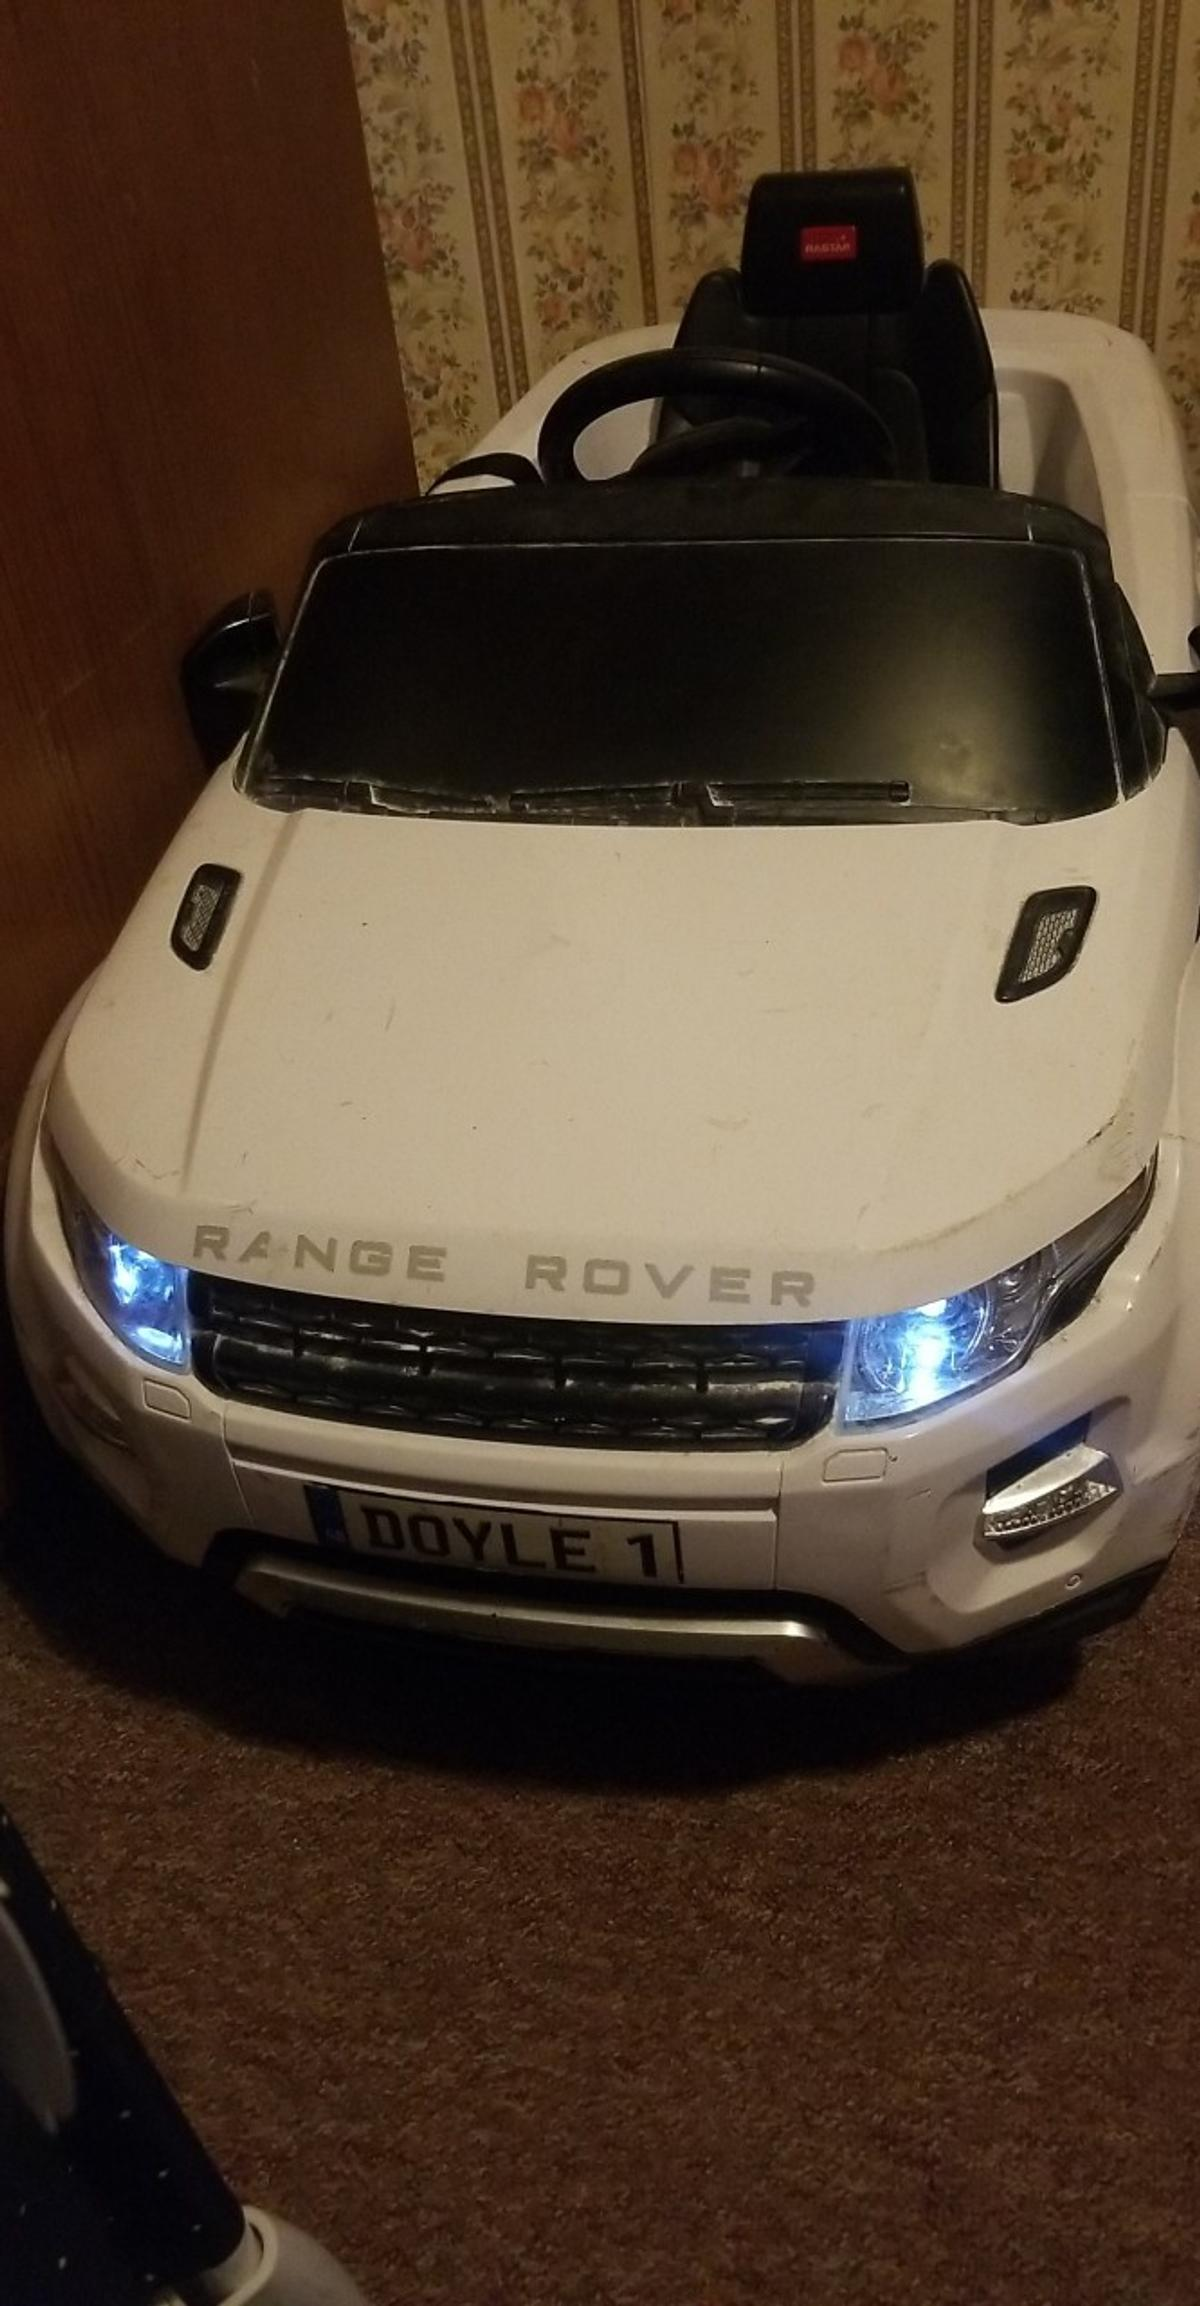 range rover evoque 12v ride on car for sale all in working condition lights and sound & can play music through an AUX cable..comes with remote control, charger and key pick up from fallowfield m14